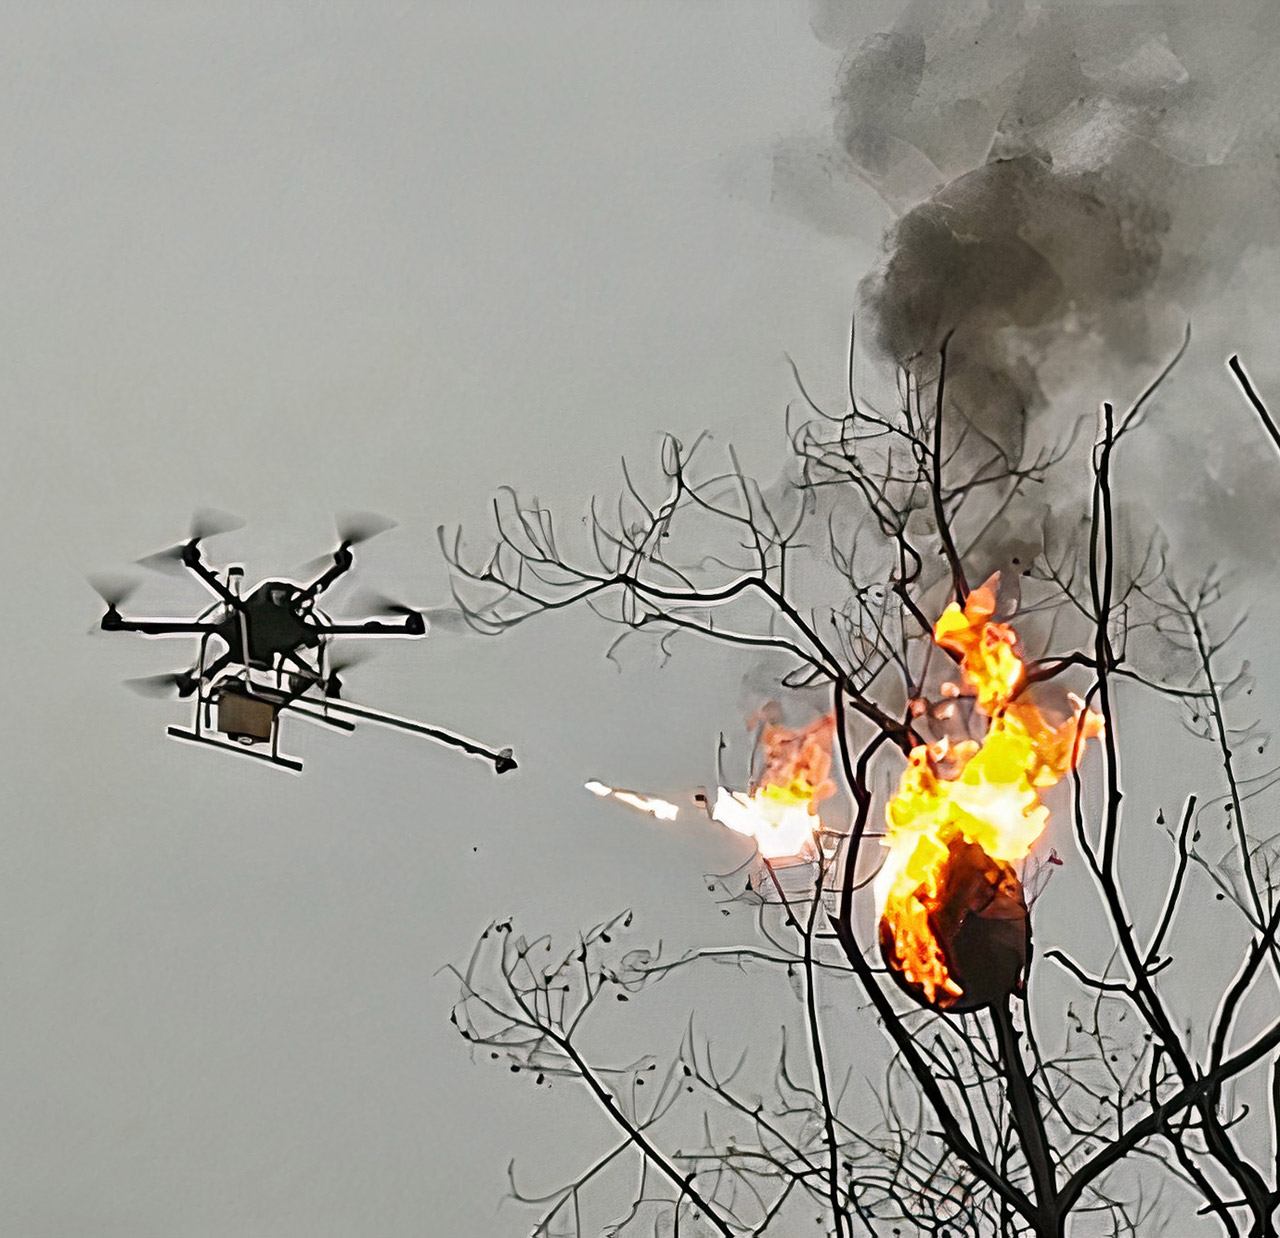 Flame-Throwing Drone Wasp Nest